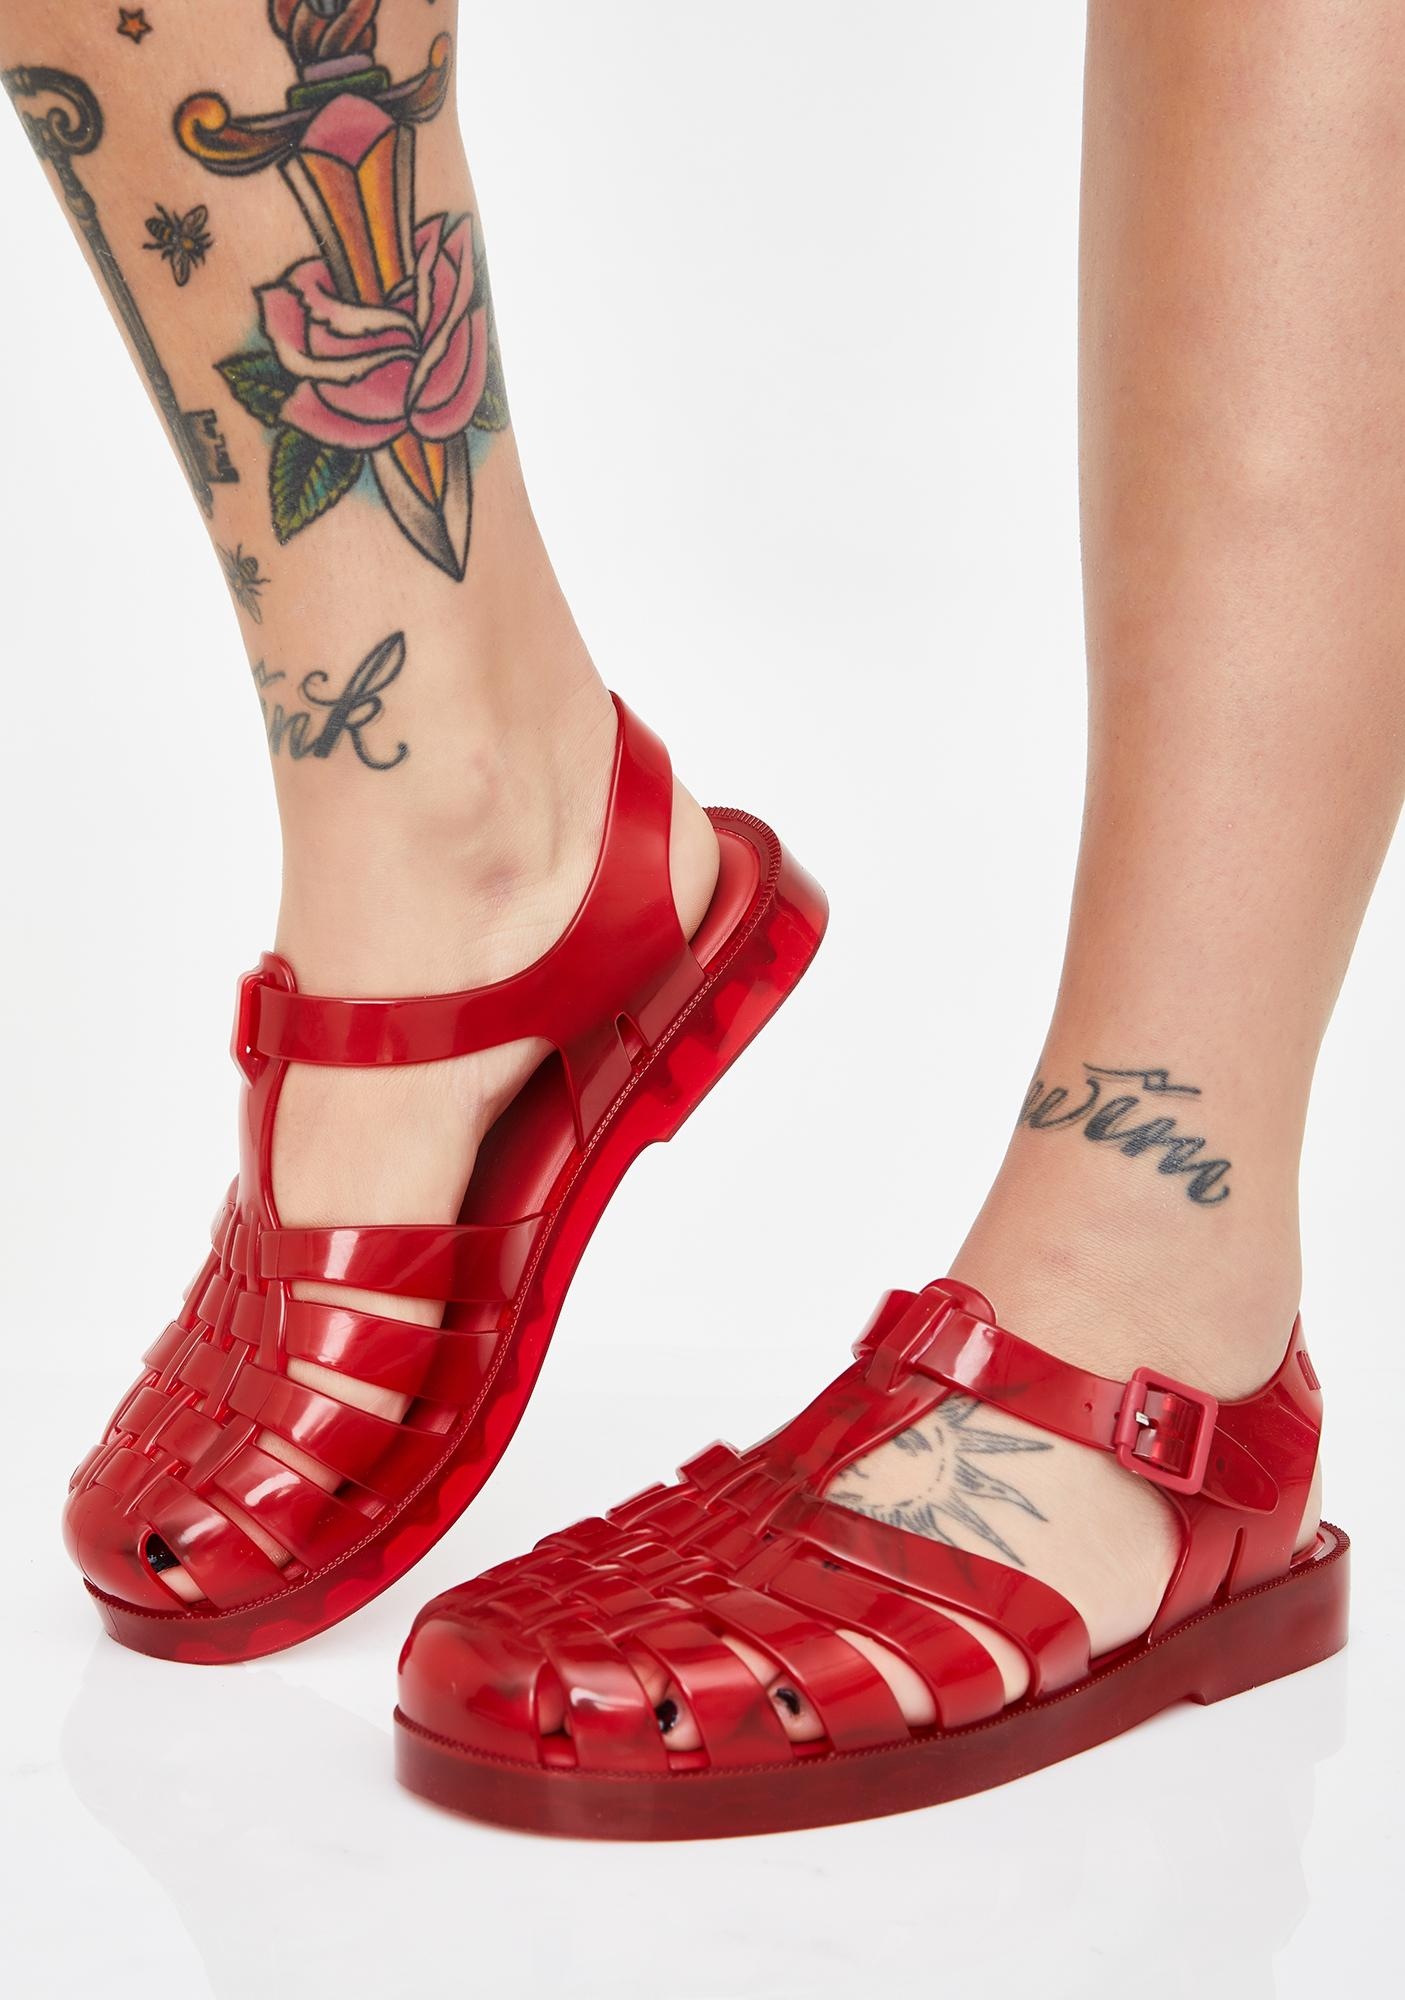 Scarlet Possession Jelly Sandals